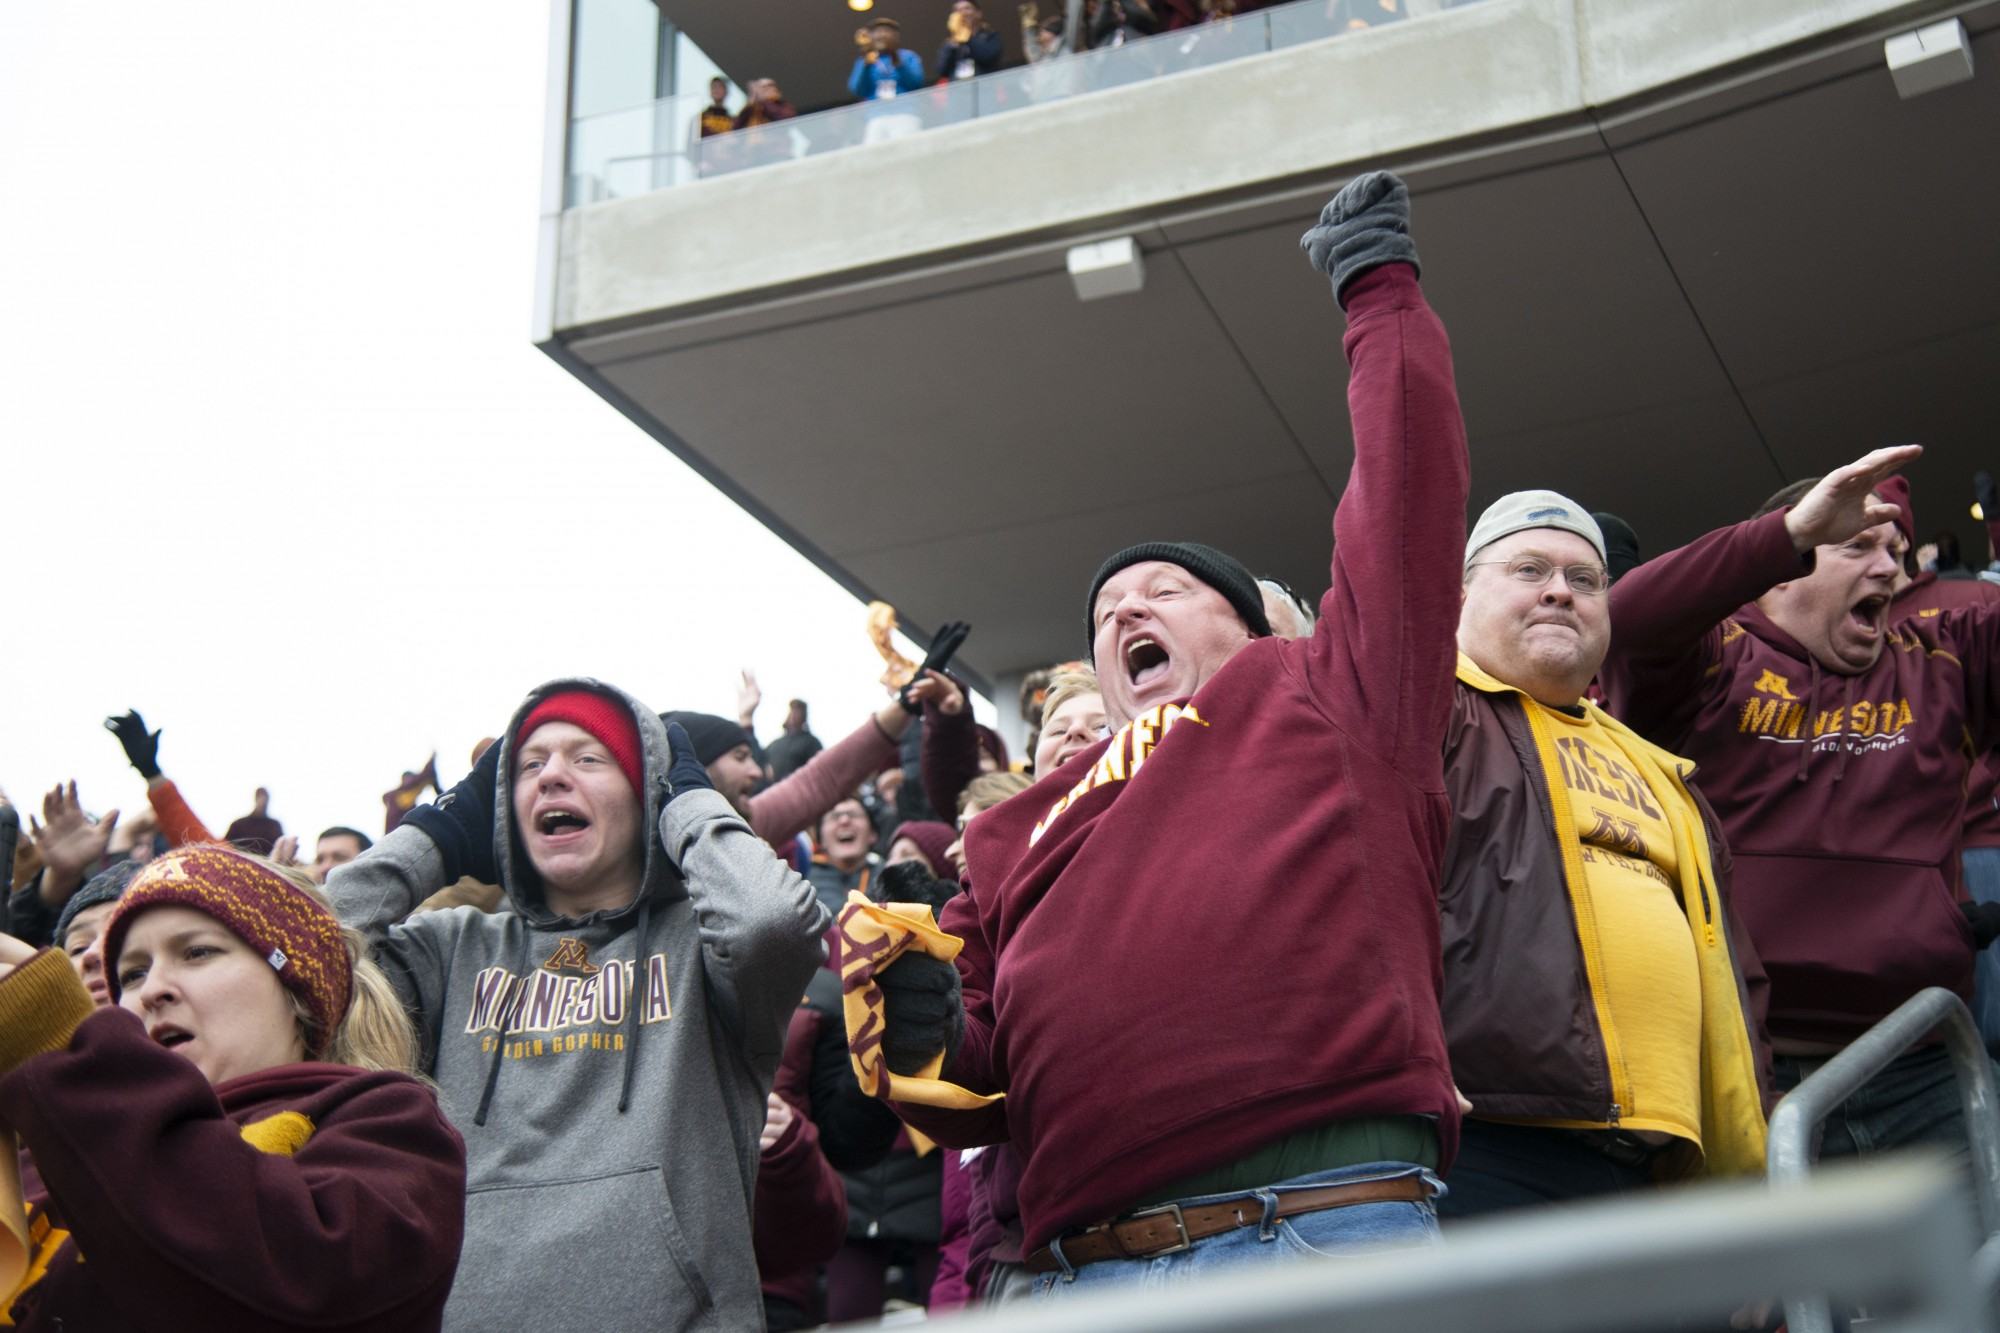 Fans cheer for the Gophers during the game against Penn State at TCF Bank Stadium Saturday, Nov. 9. The Gophers won 31-26 bringing their record to 9-0. A first since 1904.